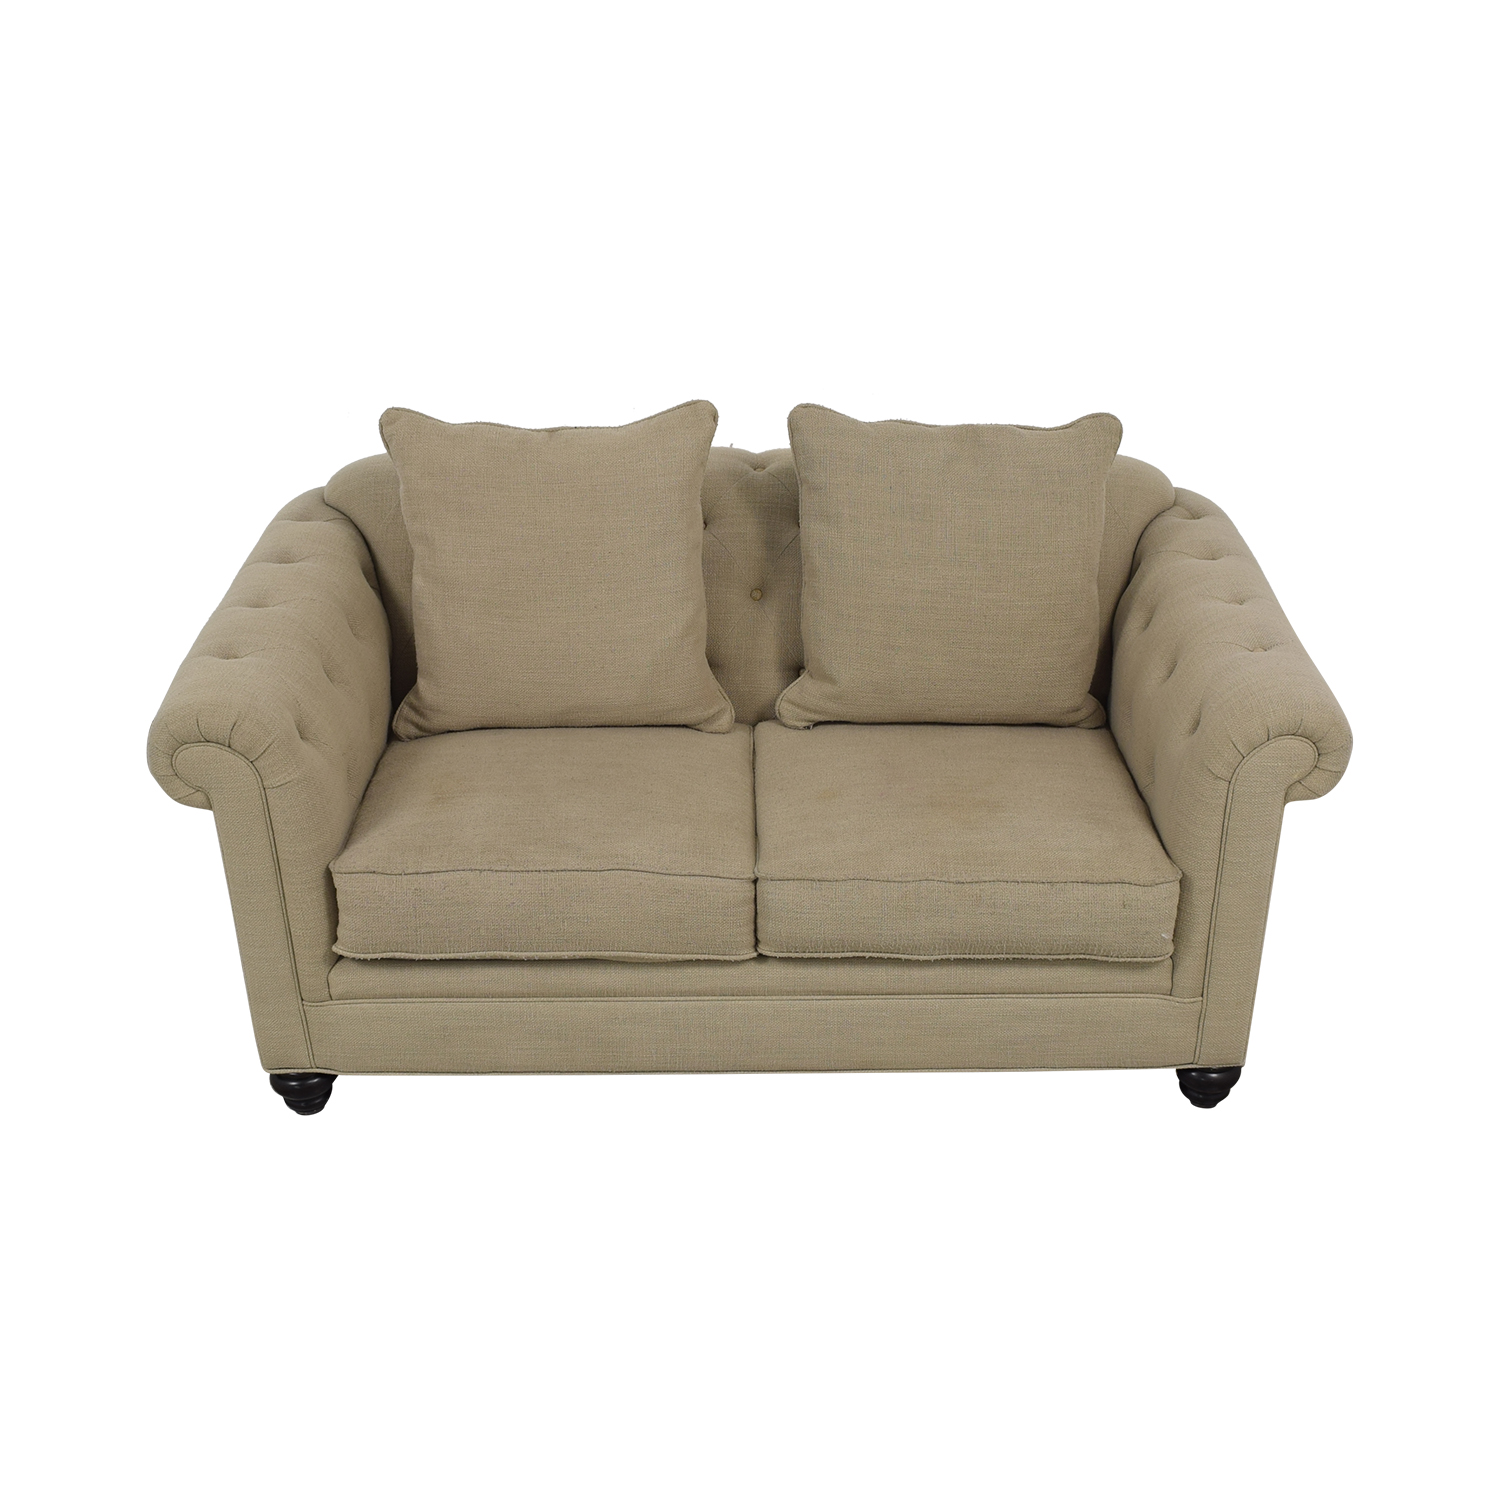 Jonathan Louis Jonathan Louis Cambridge Loveseat tan